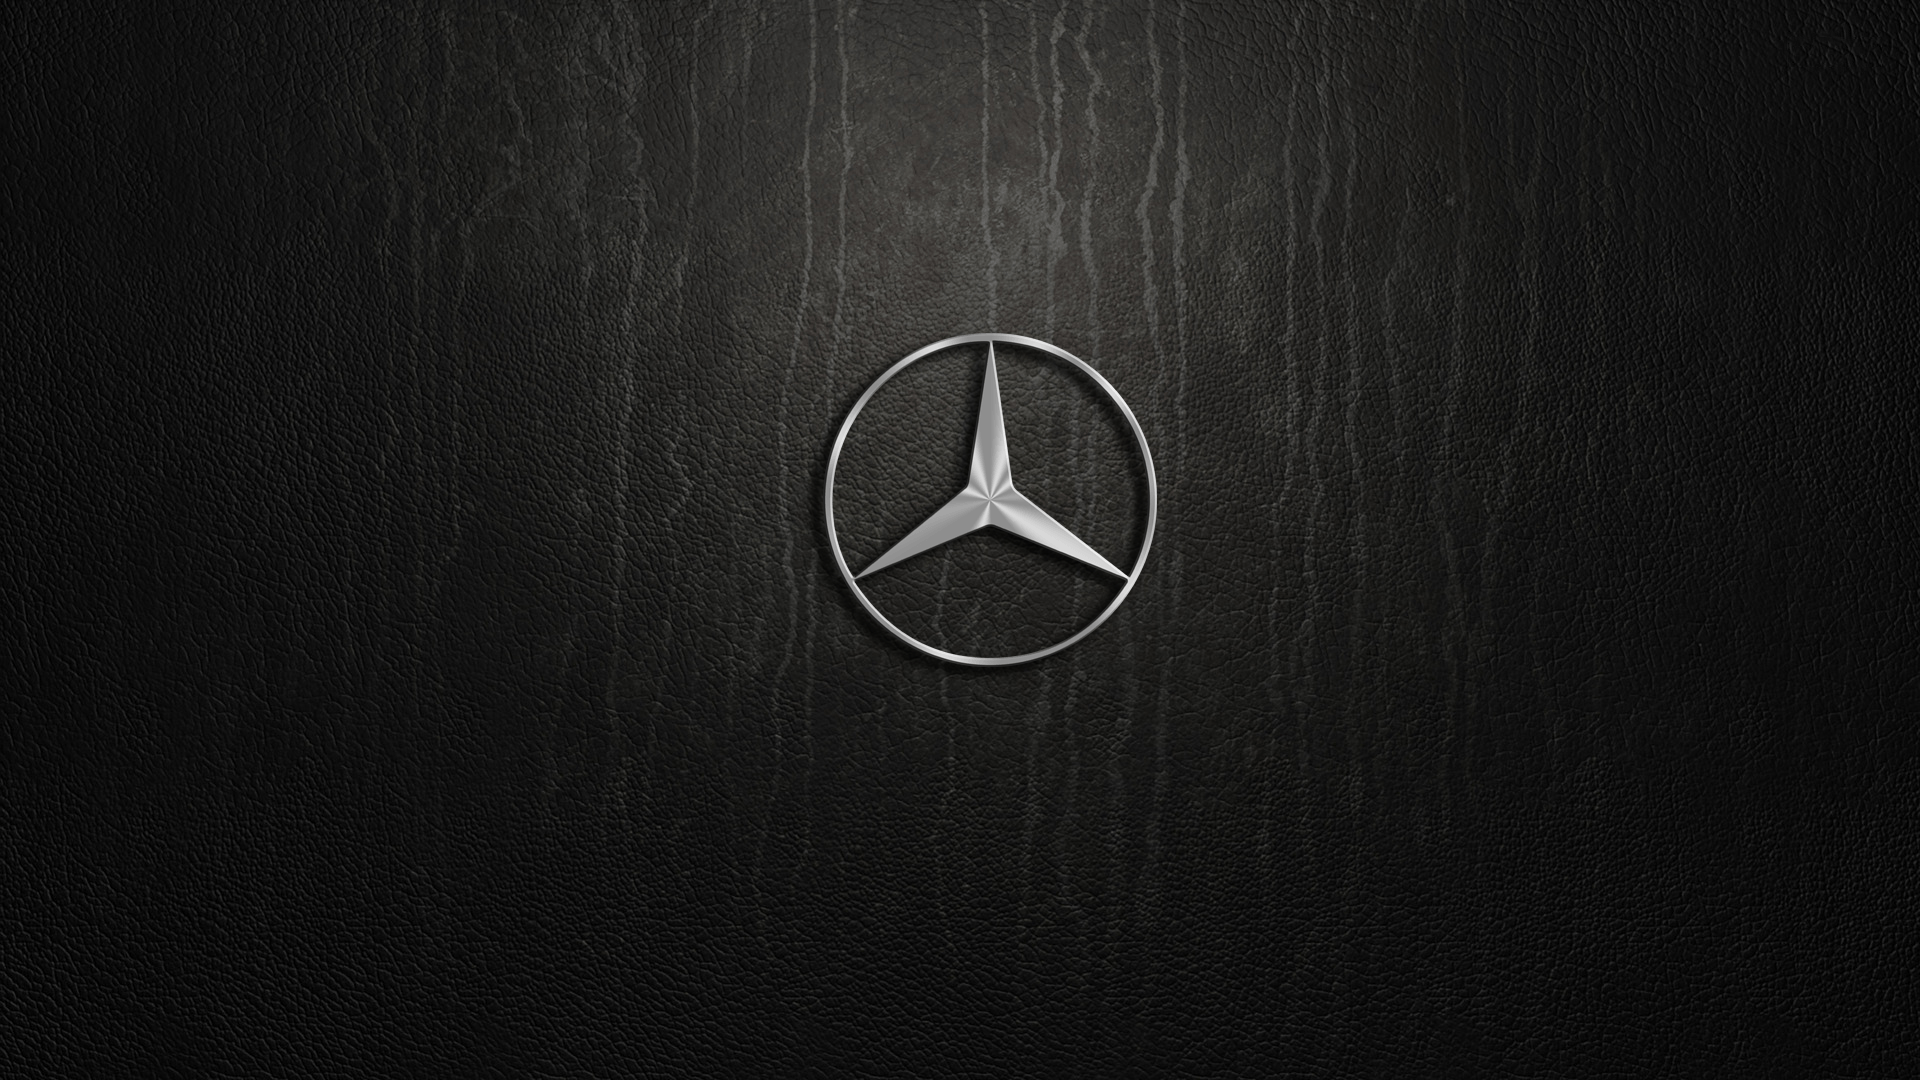 Mercedes Logo Wallpapers - Top Free